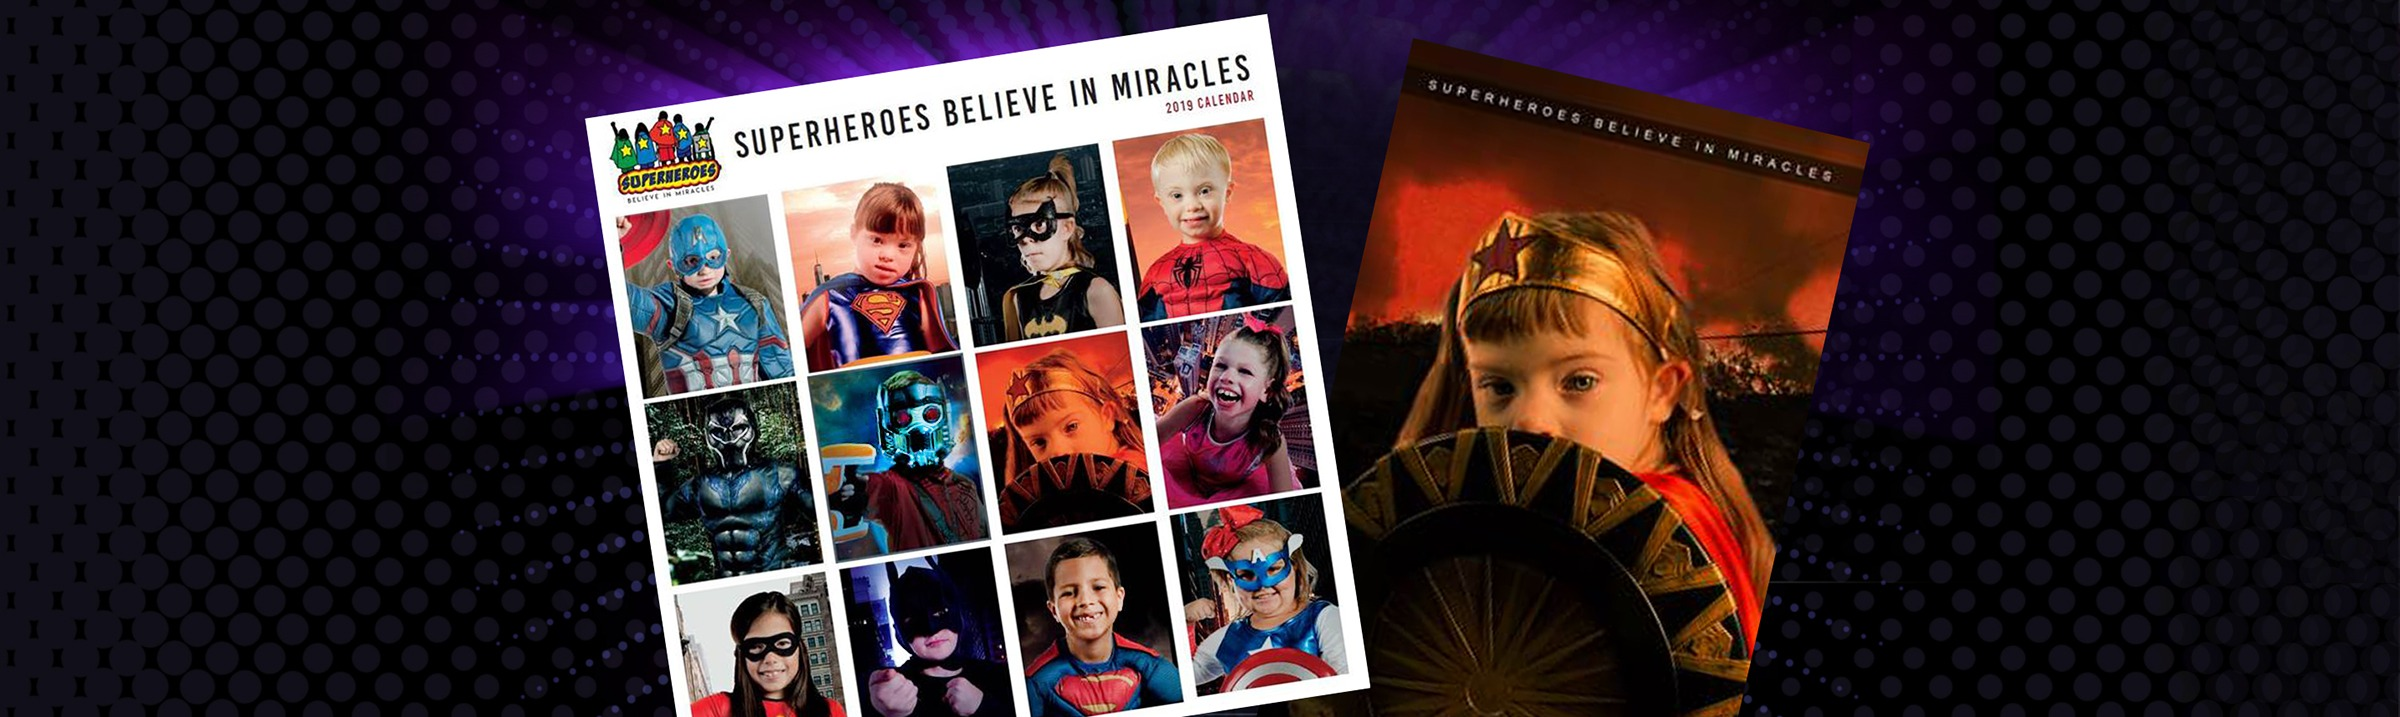 Superheroes Believe in Miracles